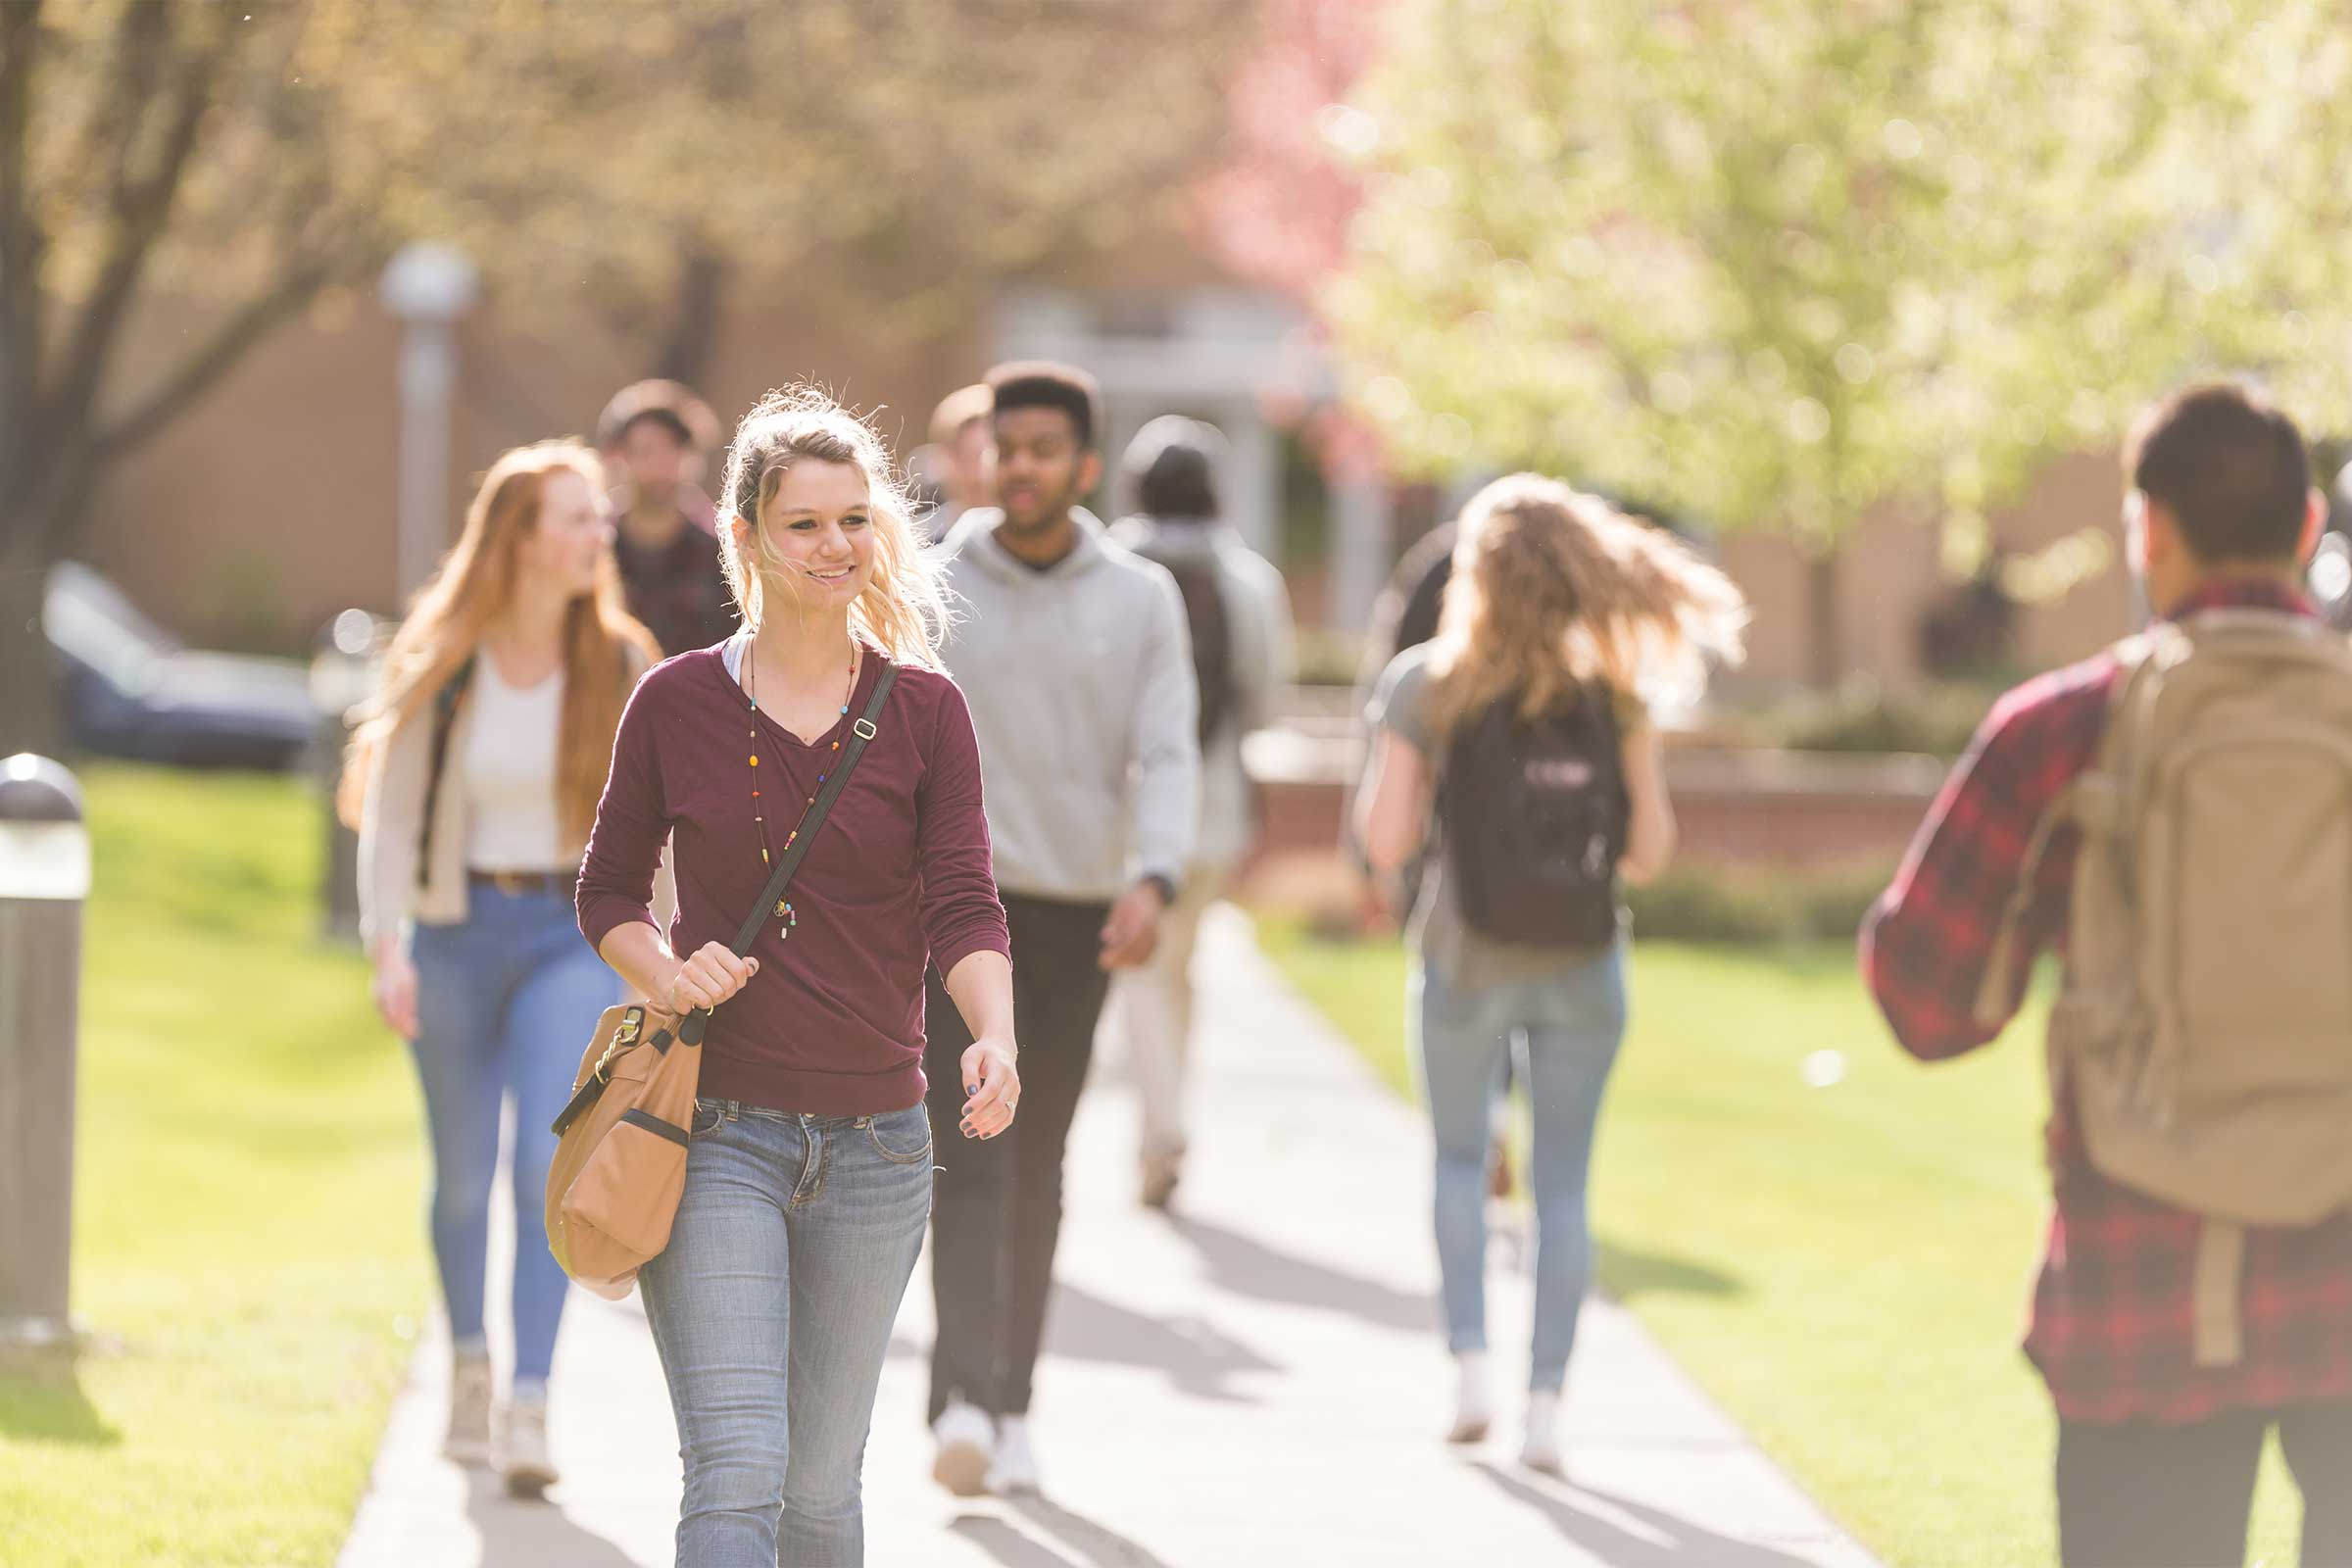 Female student walking across campus surrounded by fellow students